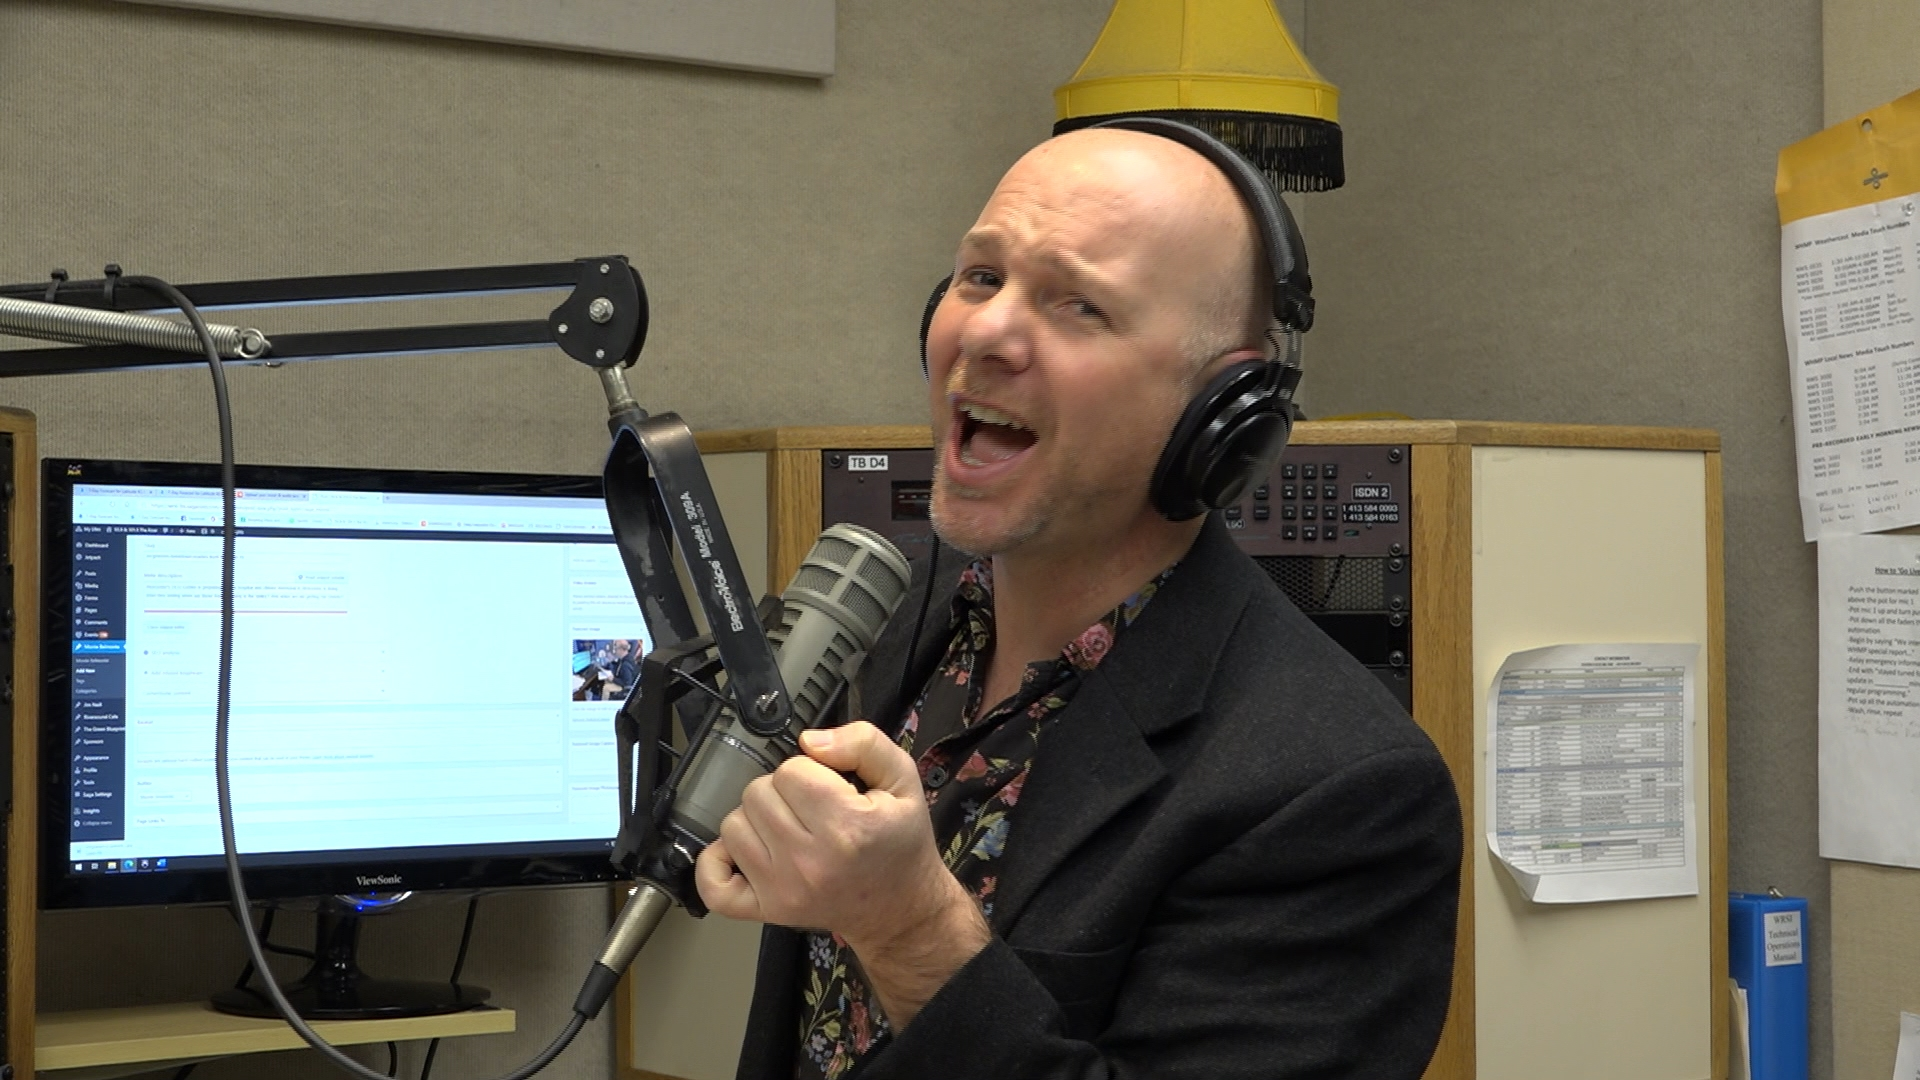 WATCH: 93.9 The River host Monte Belmonte talks about the responsibility of local media to provide information—and a little humor—in trying times.